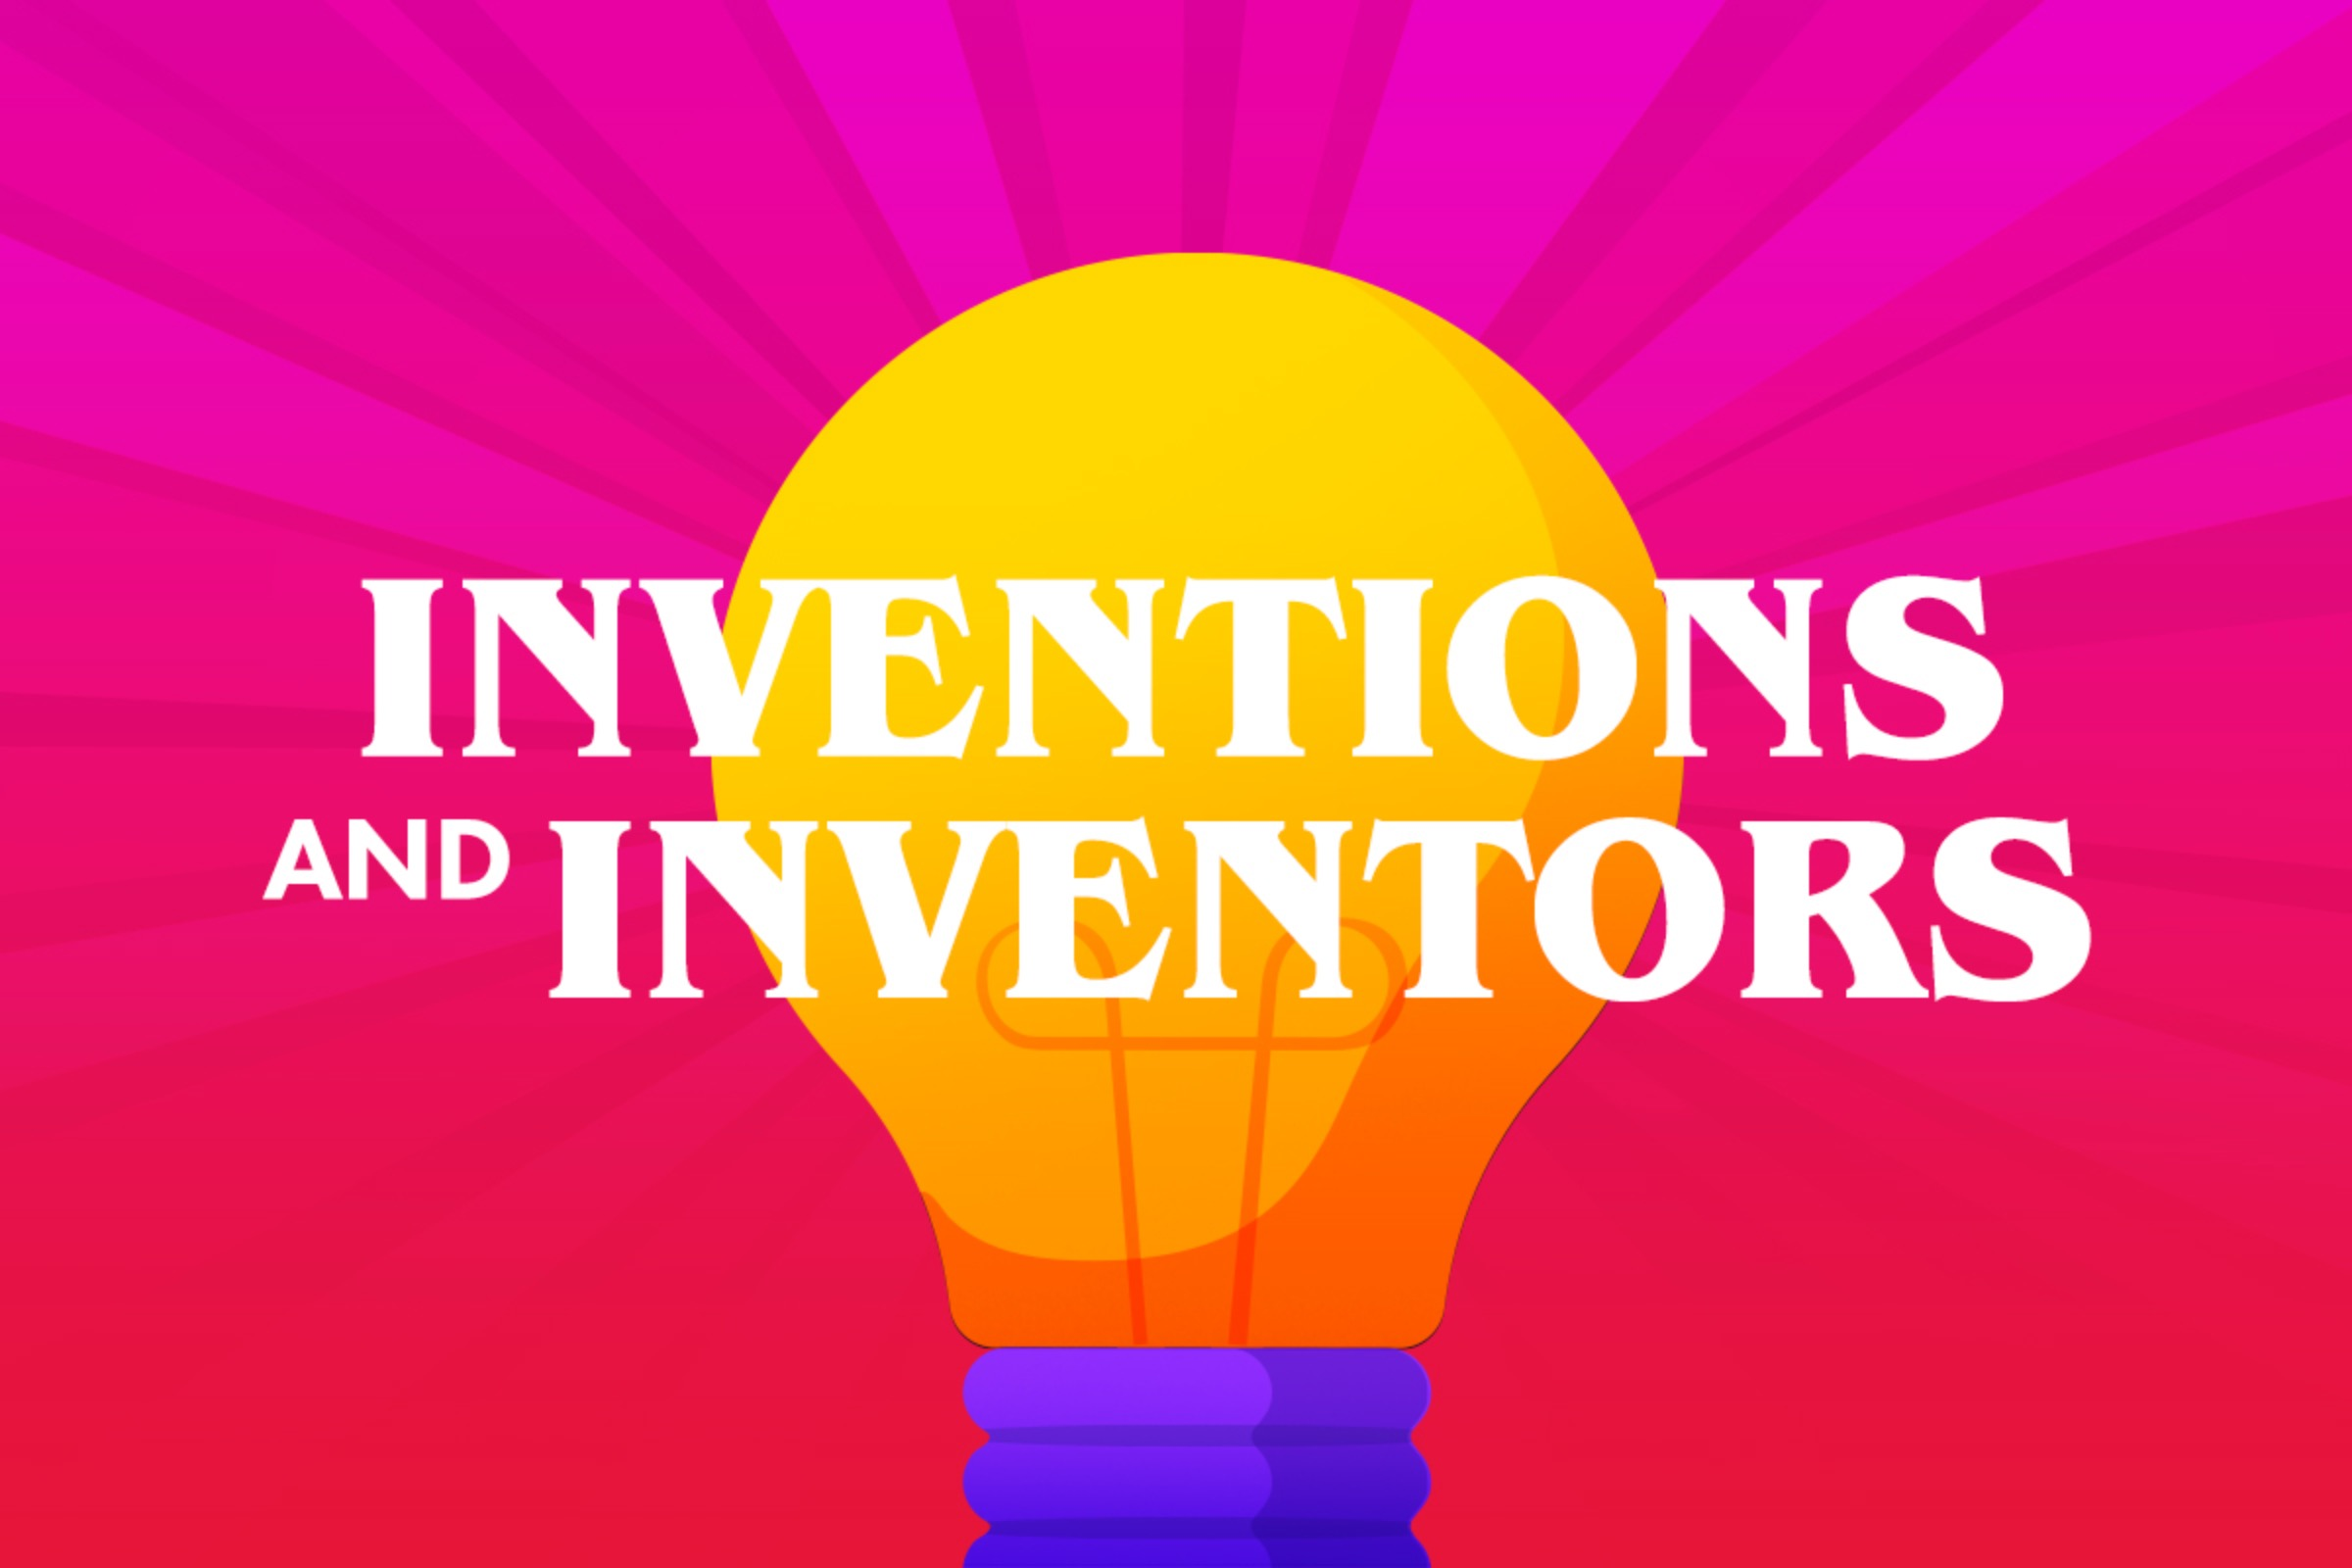 Inventions and Inventors - Quick Questions - 1